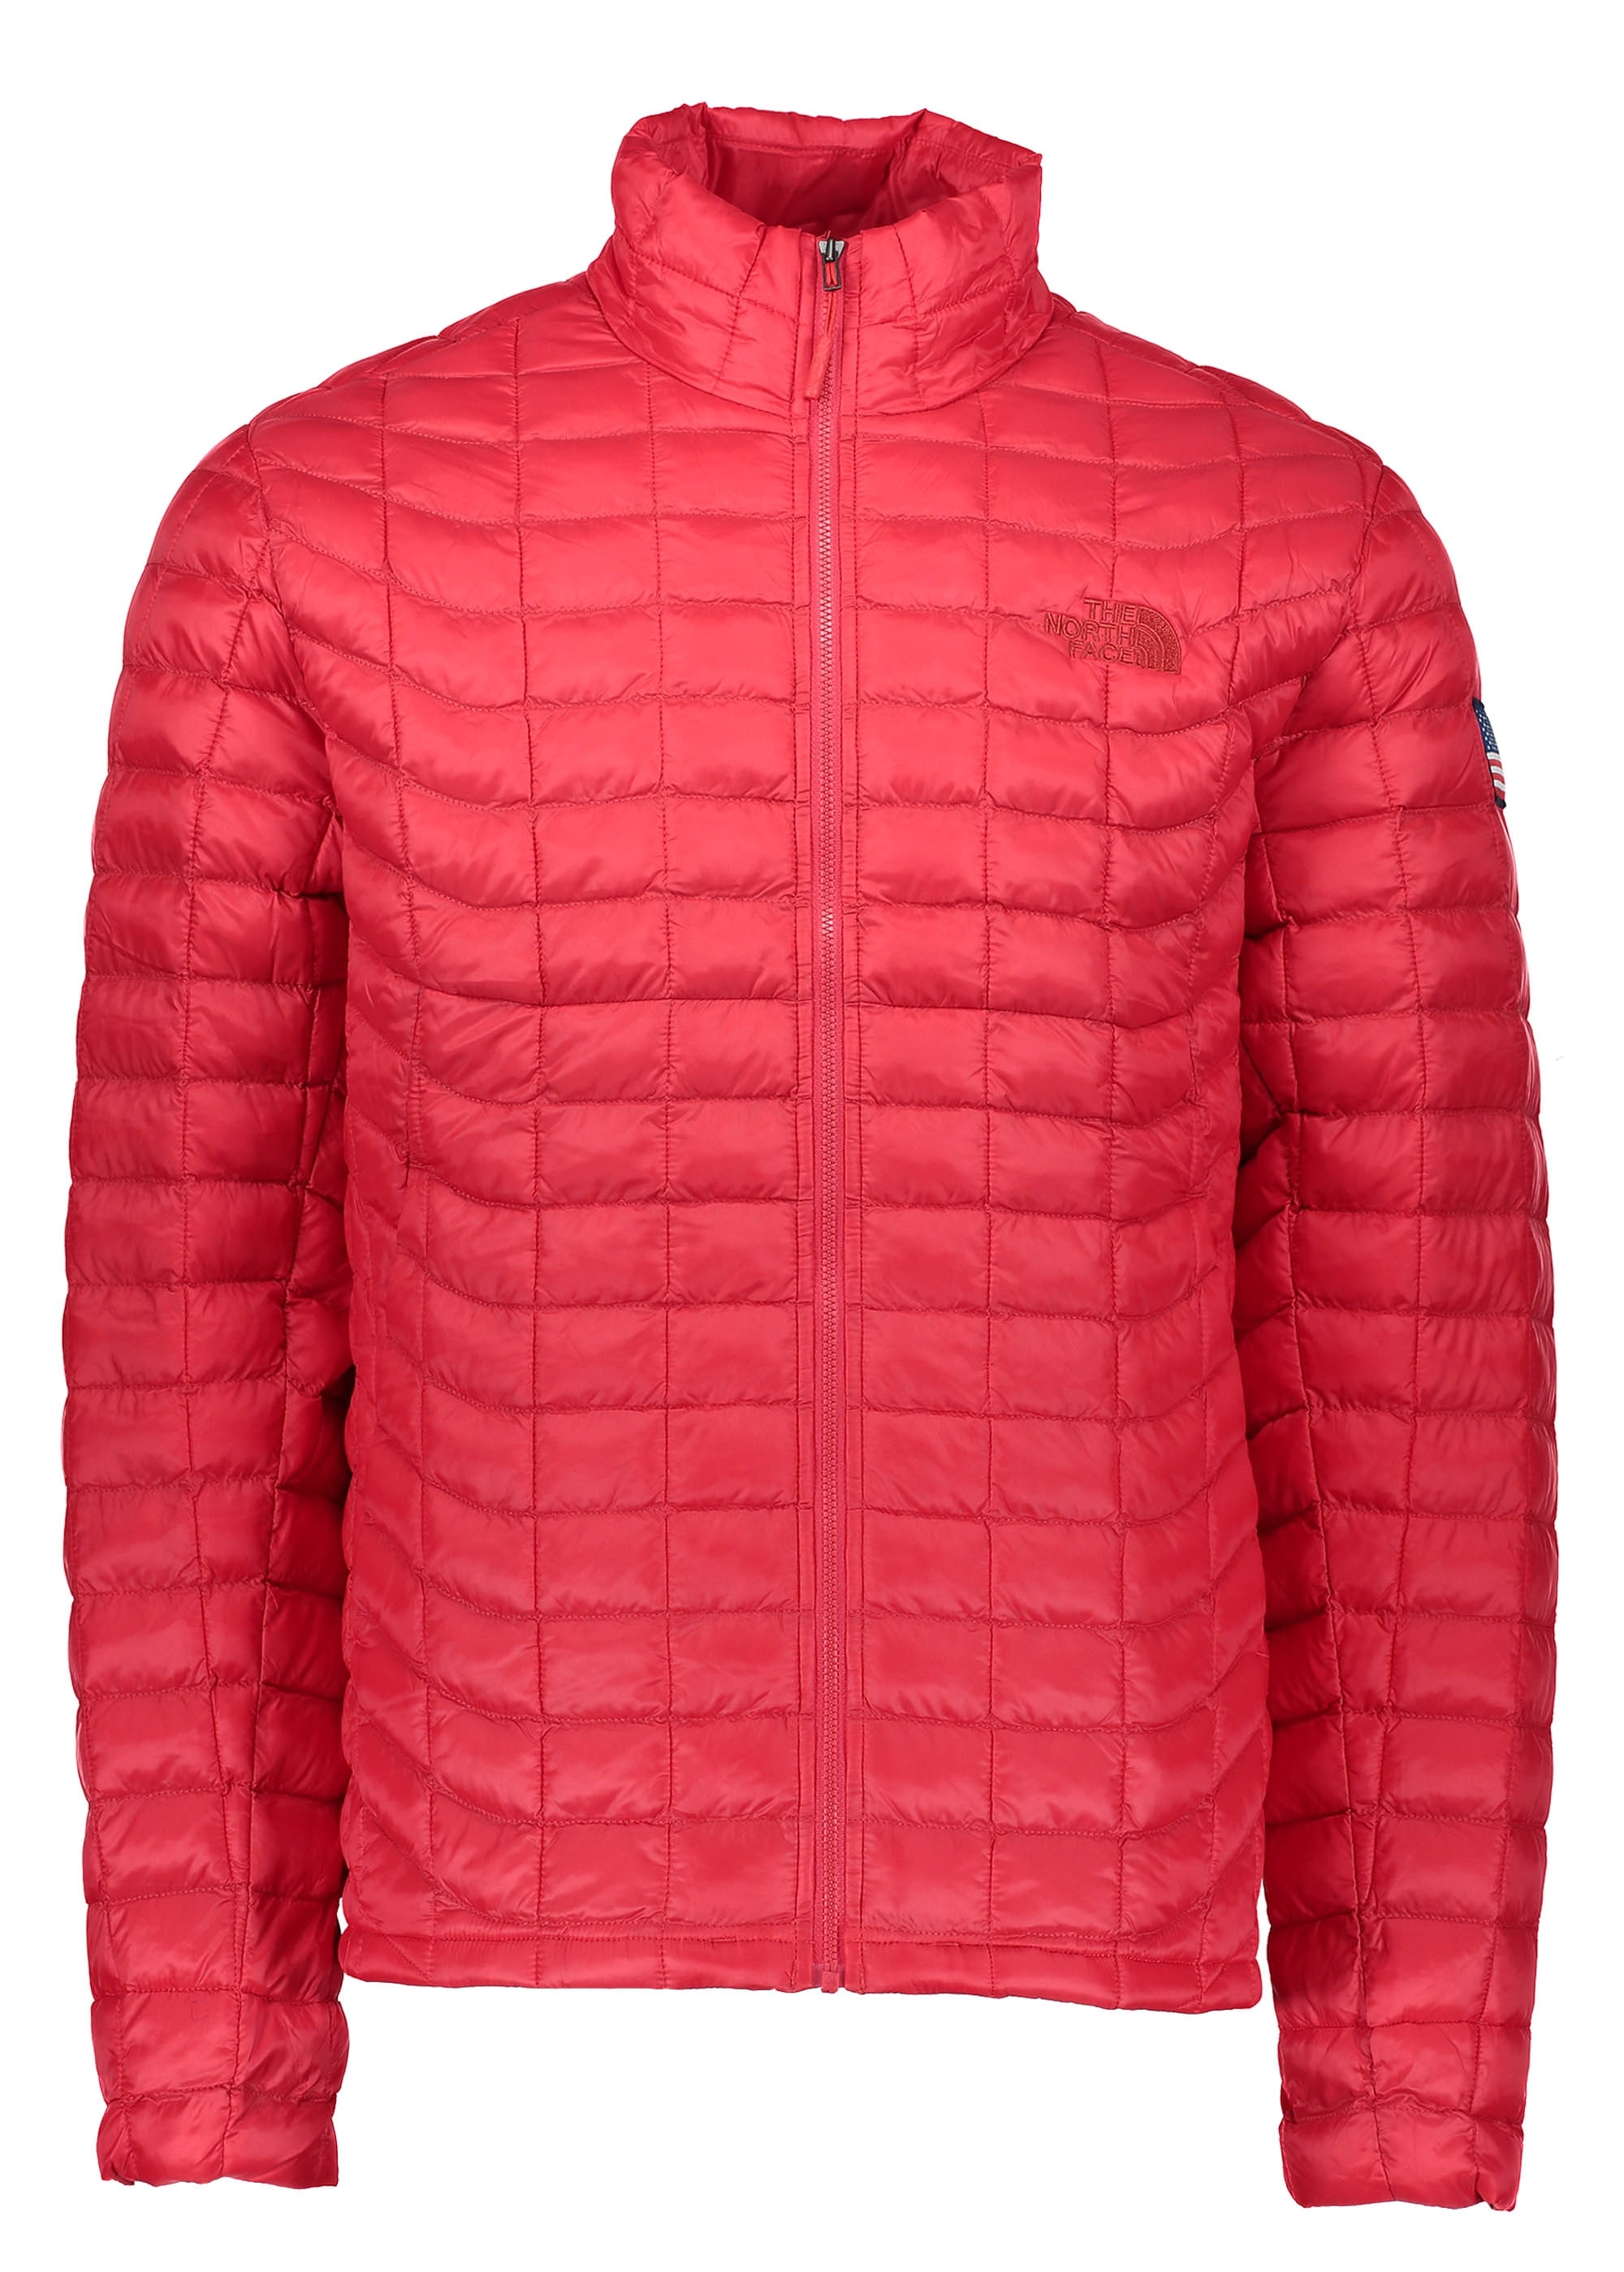 5cf54bfd1 The North Face International Thermoball Full Zip - Red